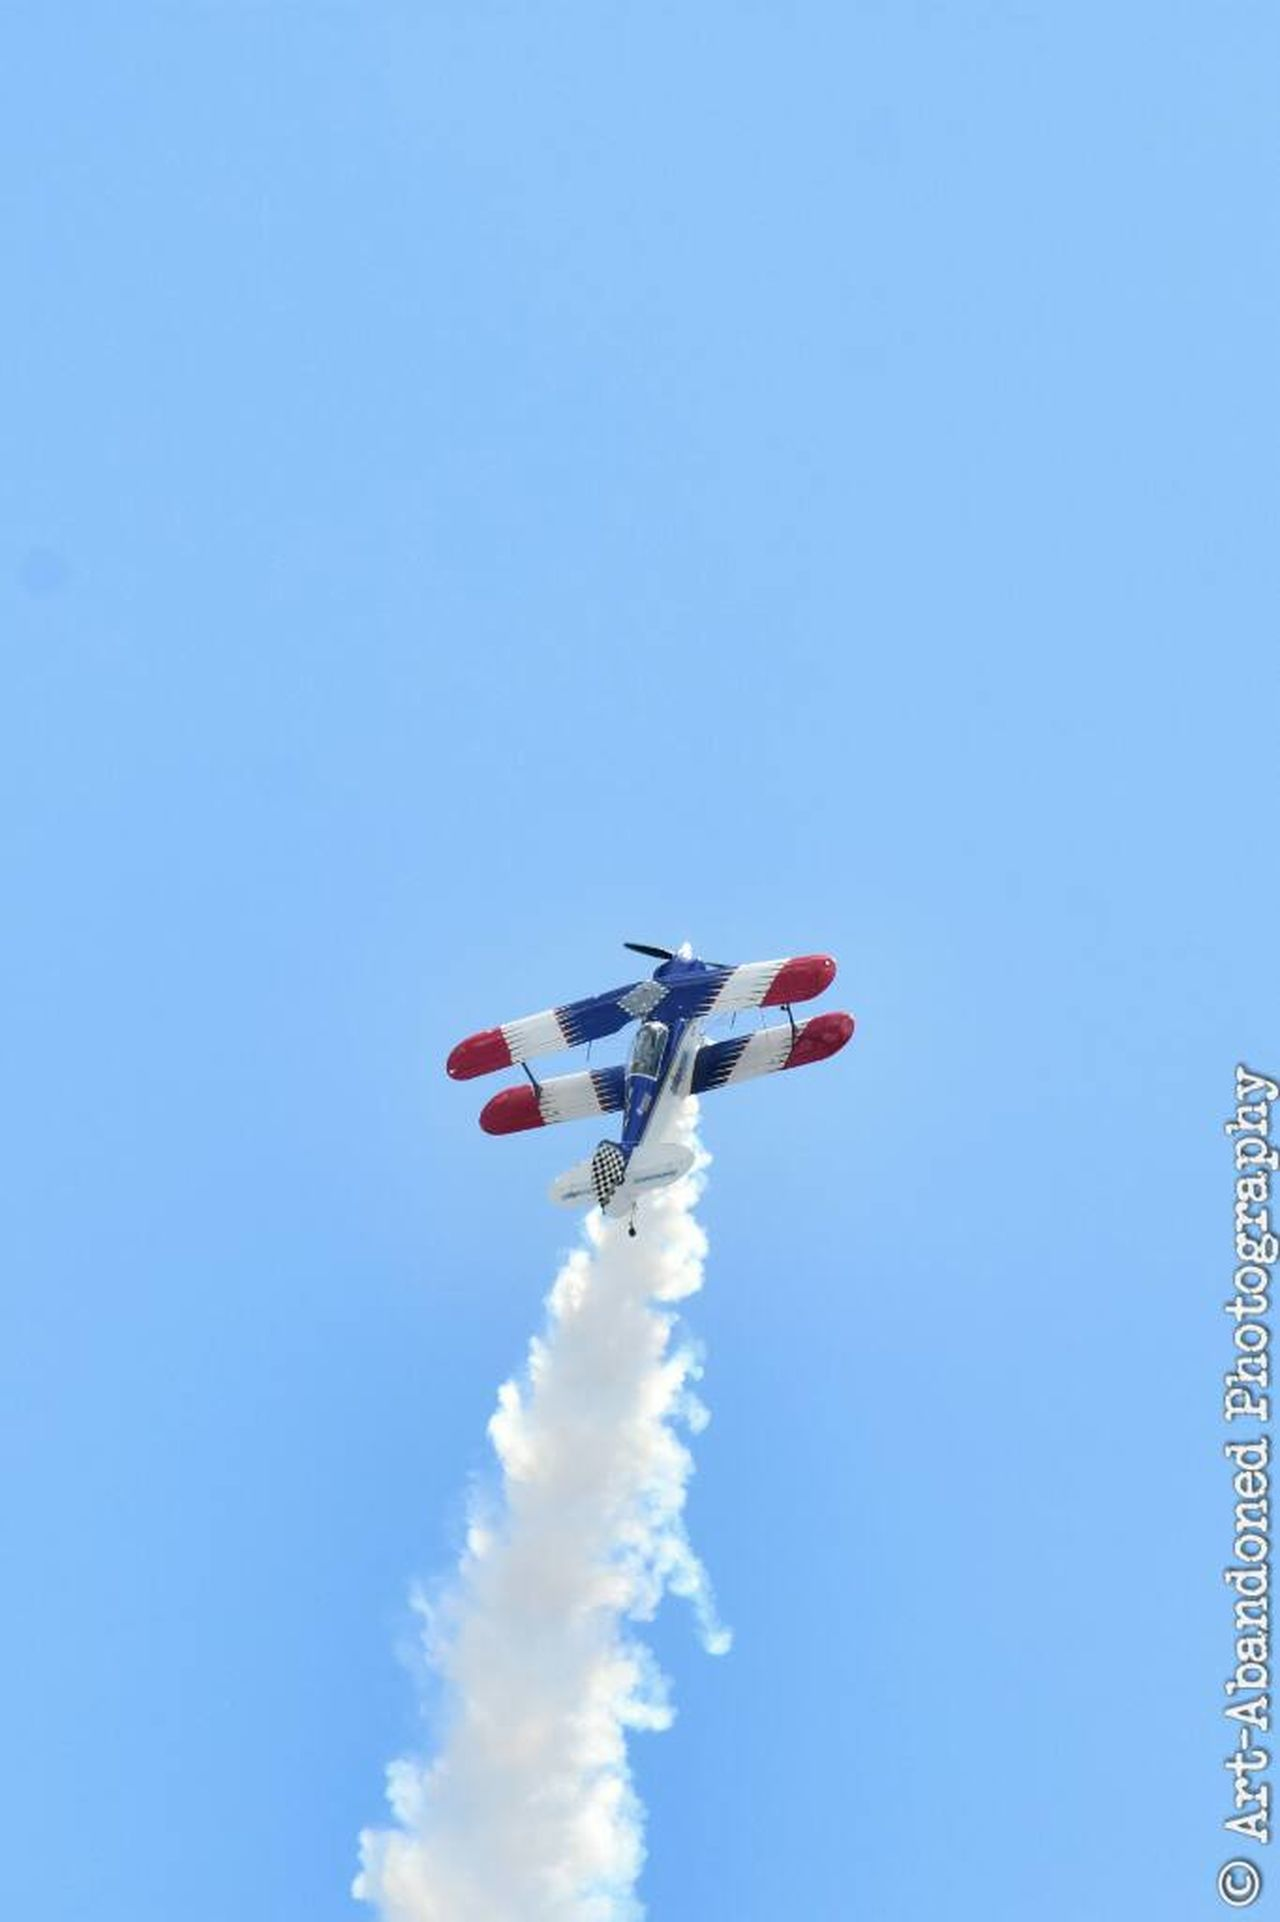 Wings Over The Rock 2016 Little Rock Municipal Airport Biplane Summer Festivities Color Photography Check This Out Antiquated Technology